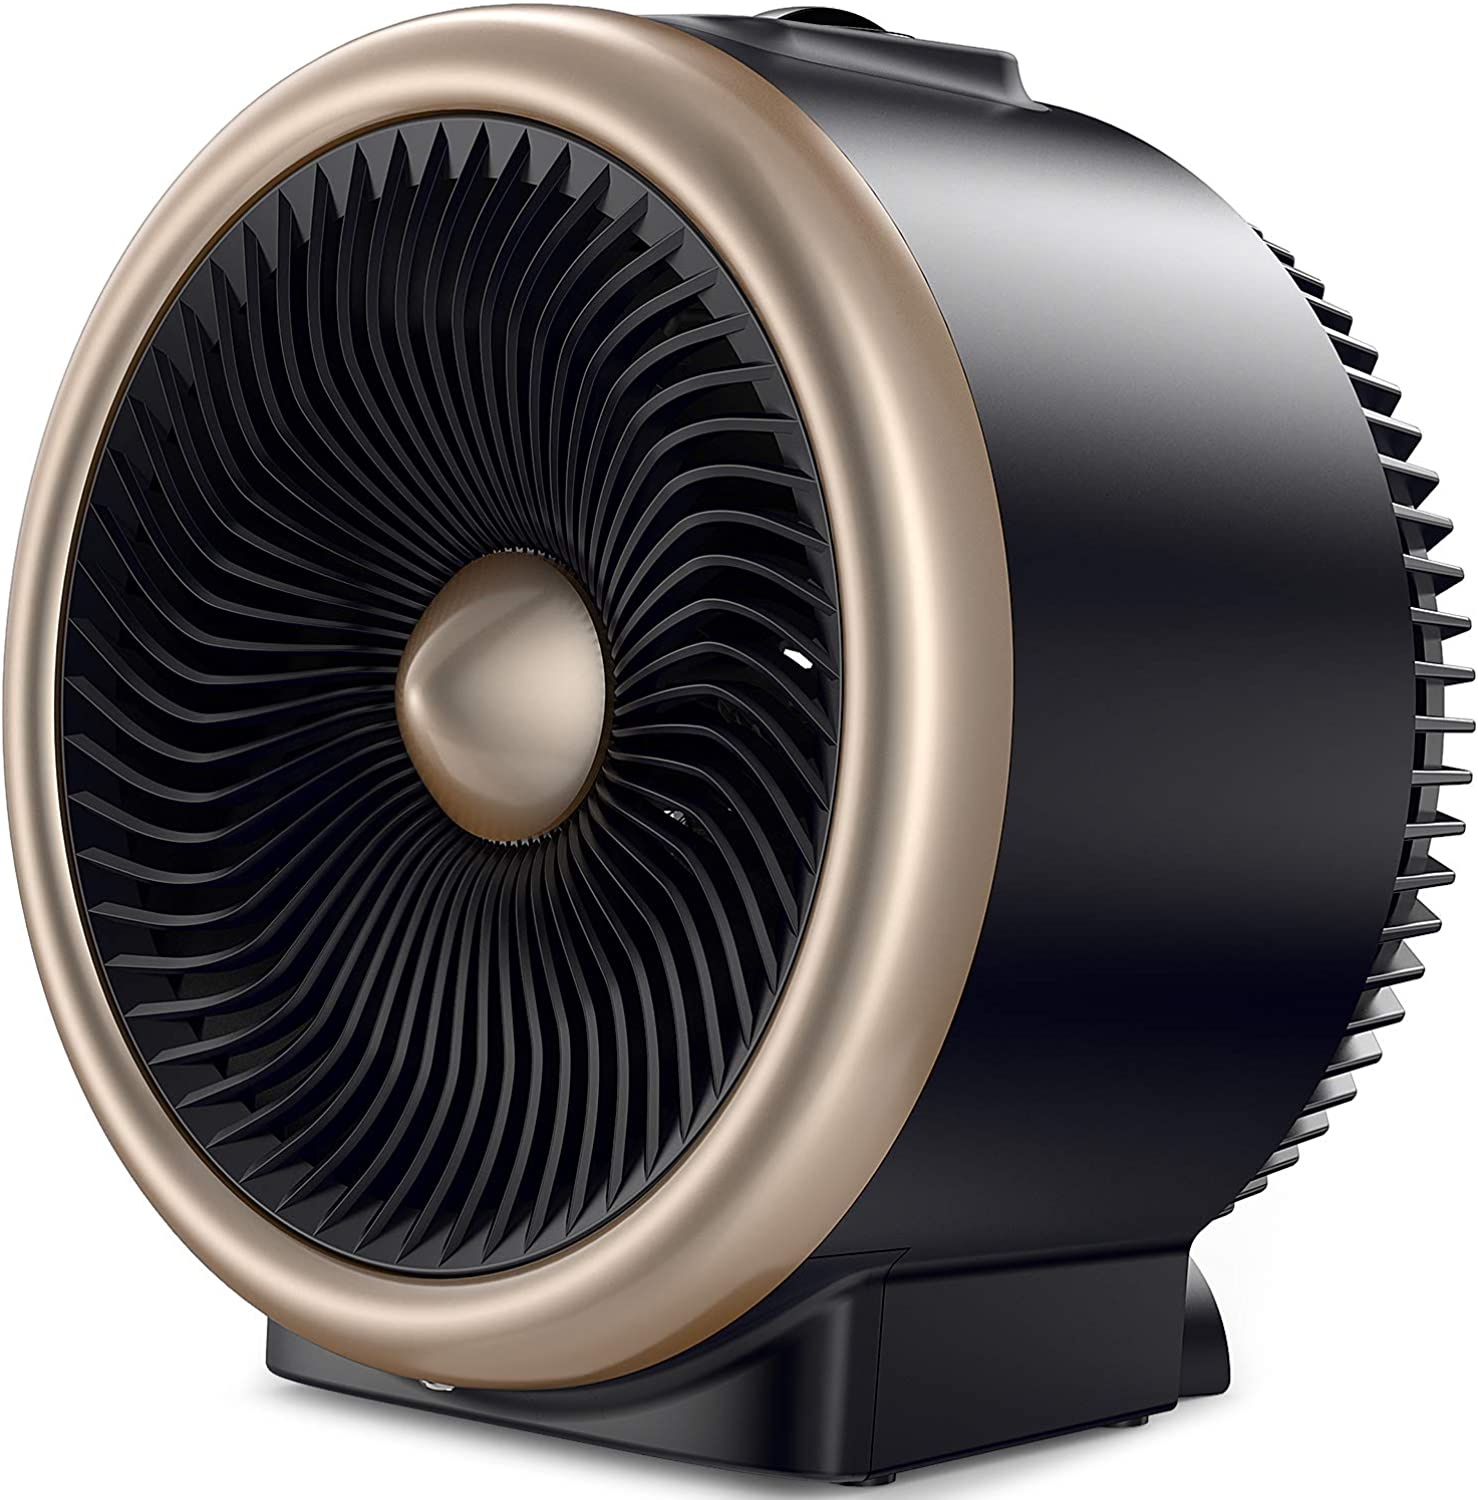 PELONIS PSH700G PSH700S Space Vortex Heater with Air Circulator Fan, 2 in 1 Portable, 900W 1500W, ETL Listed, Auto Tip-Over Shut Off & Overheat Predection for All Seasons & Whole Room, Silver, gold